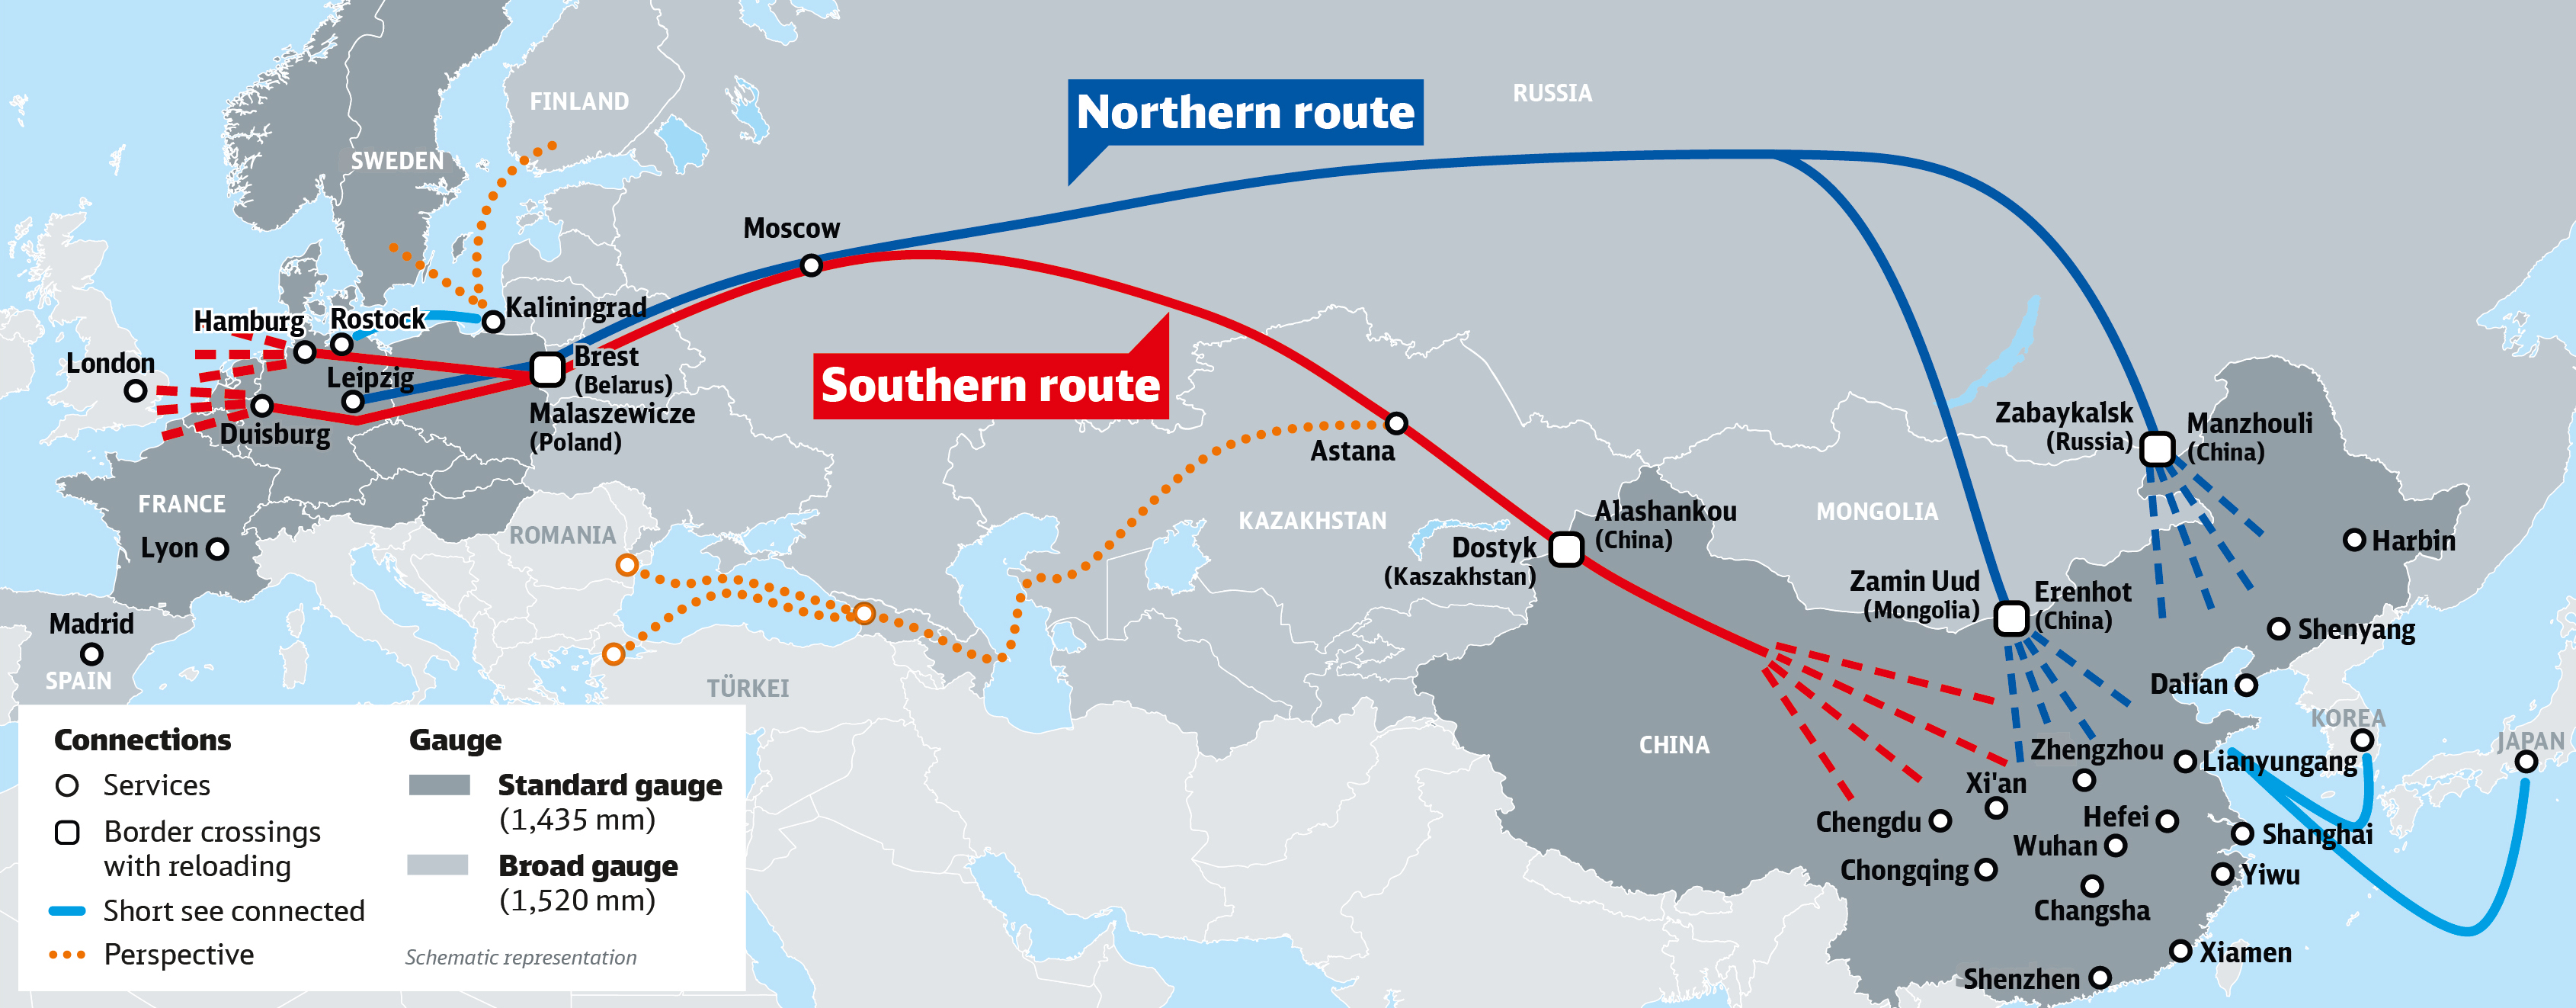 deutsche bahn karte Success story in the Far East: ten years of service to China